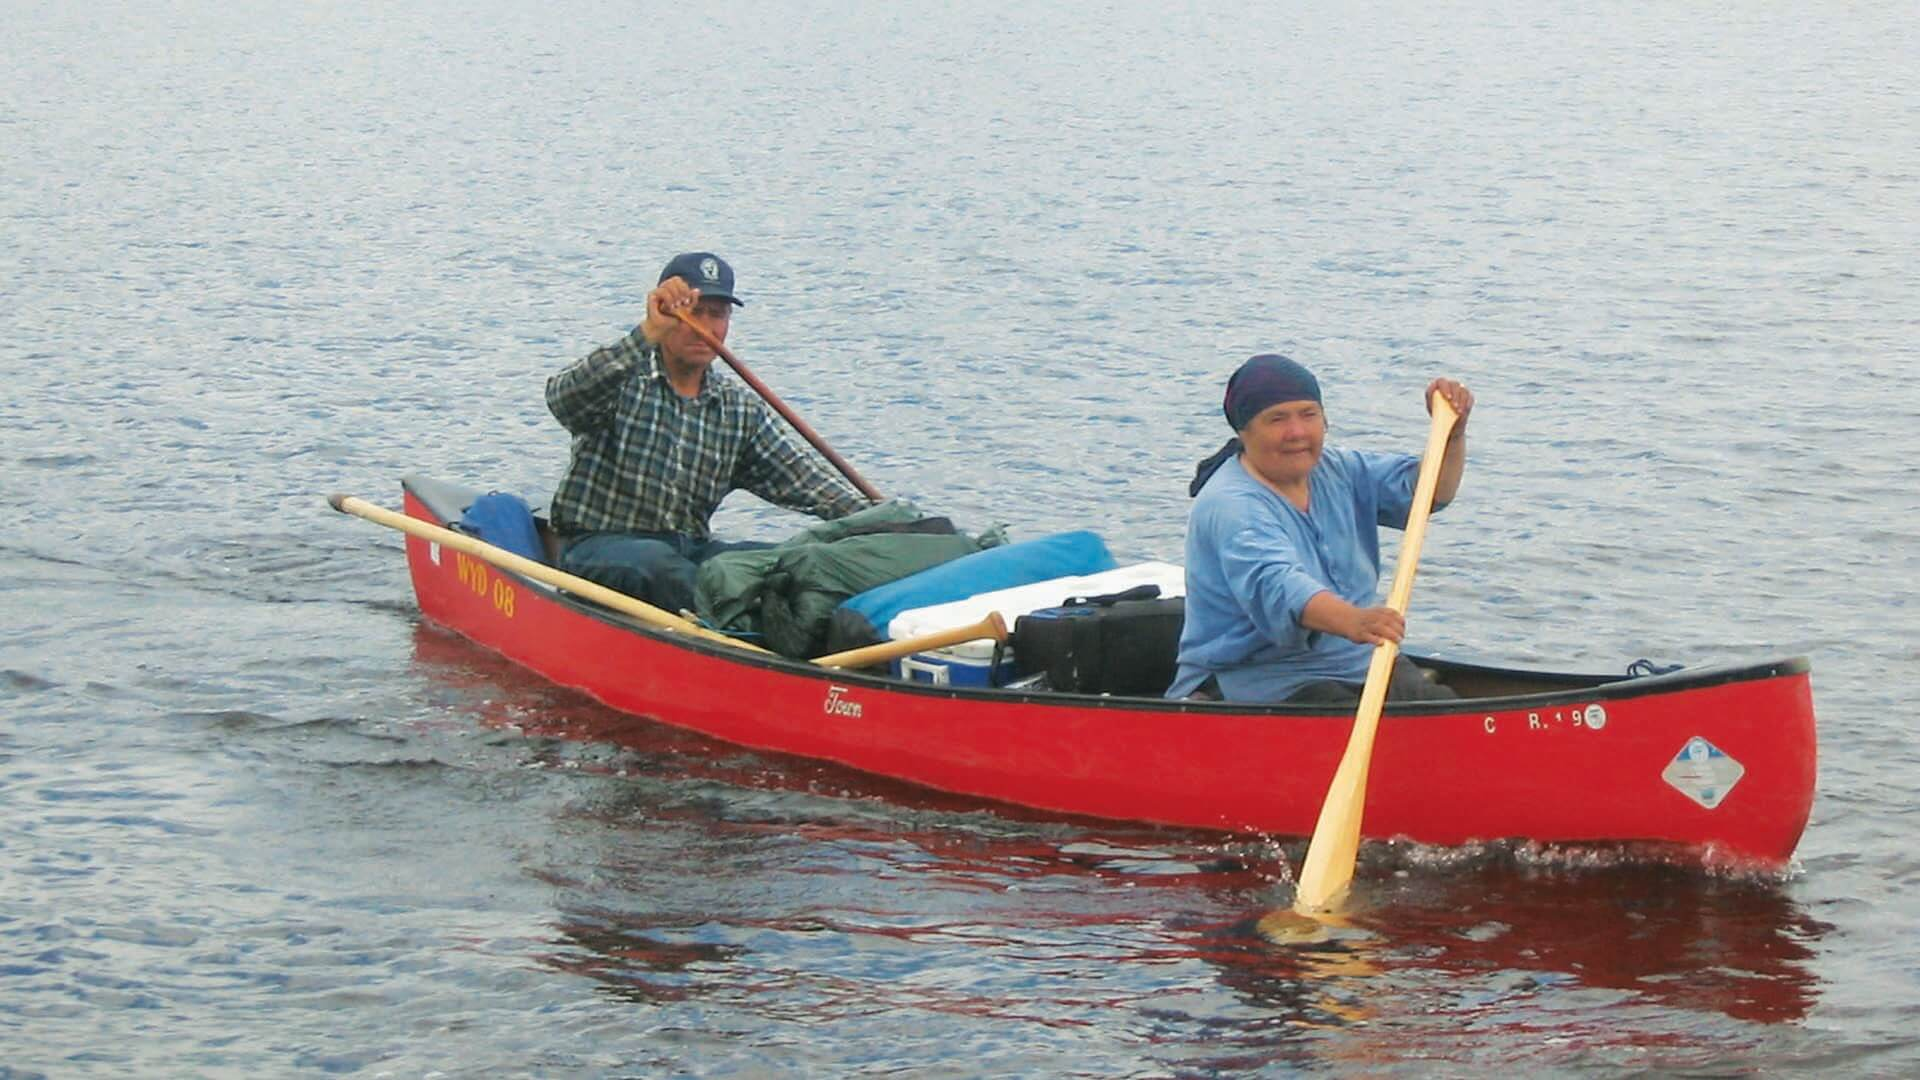 Luke and Gerti Diamond canoe